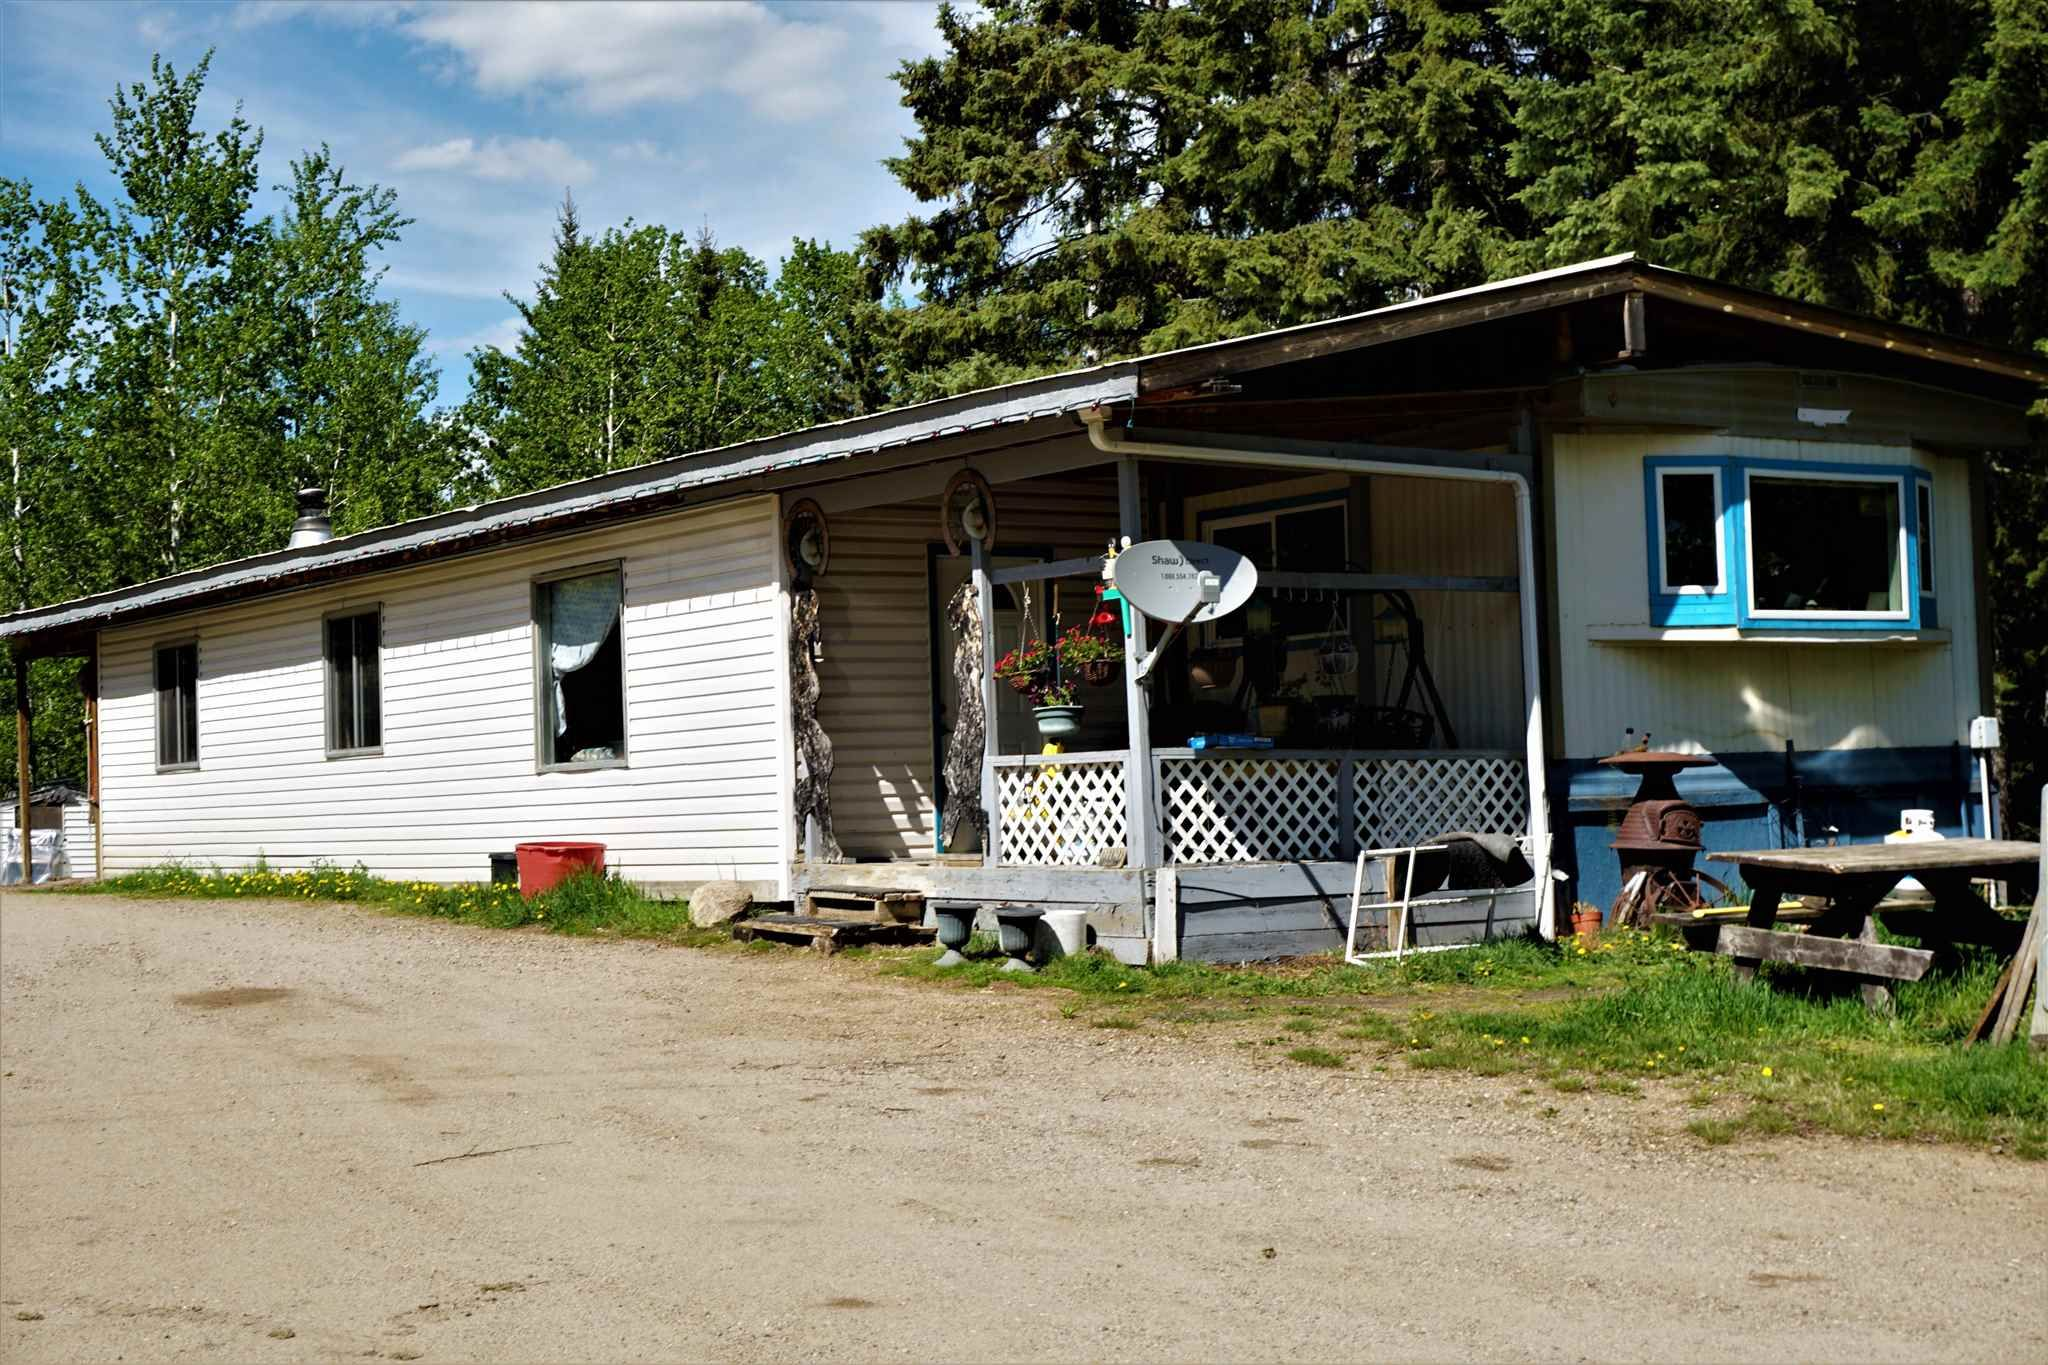 Main Photo: TWP 631 SH 831: Rural Thorhild County Manufactured Home for sale : MLS®# E4246906